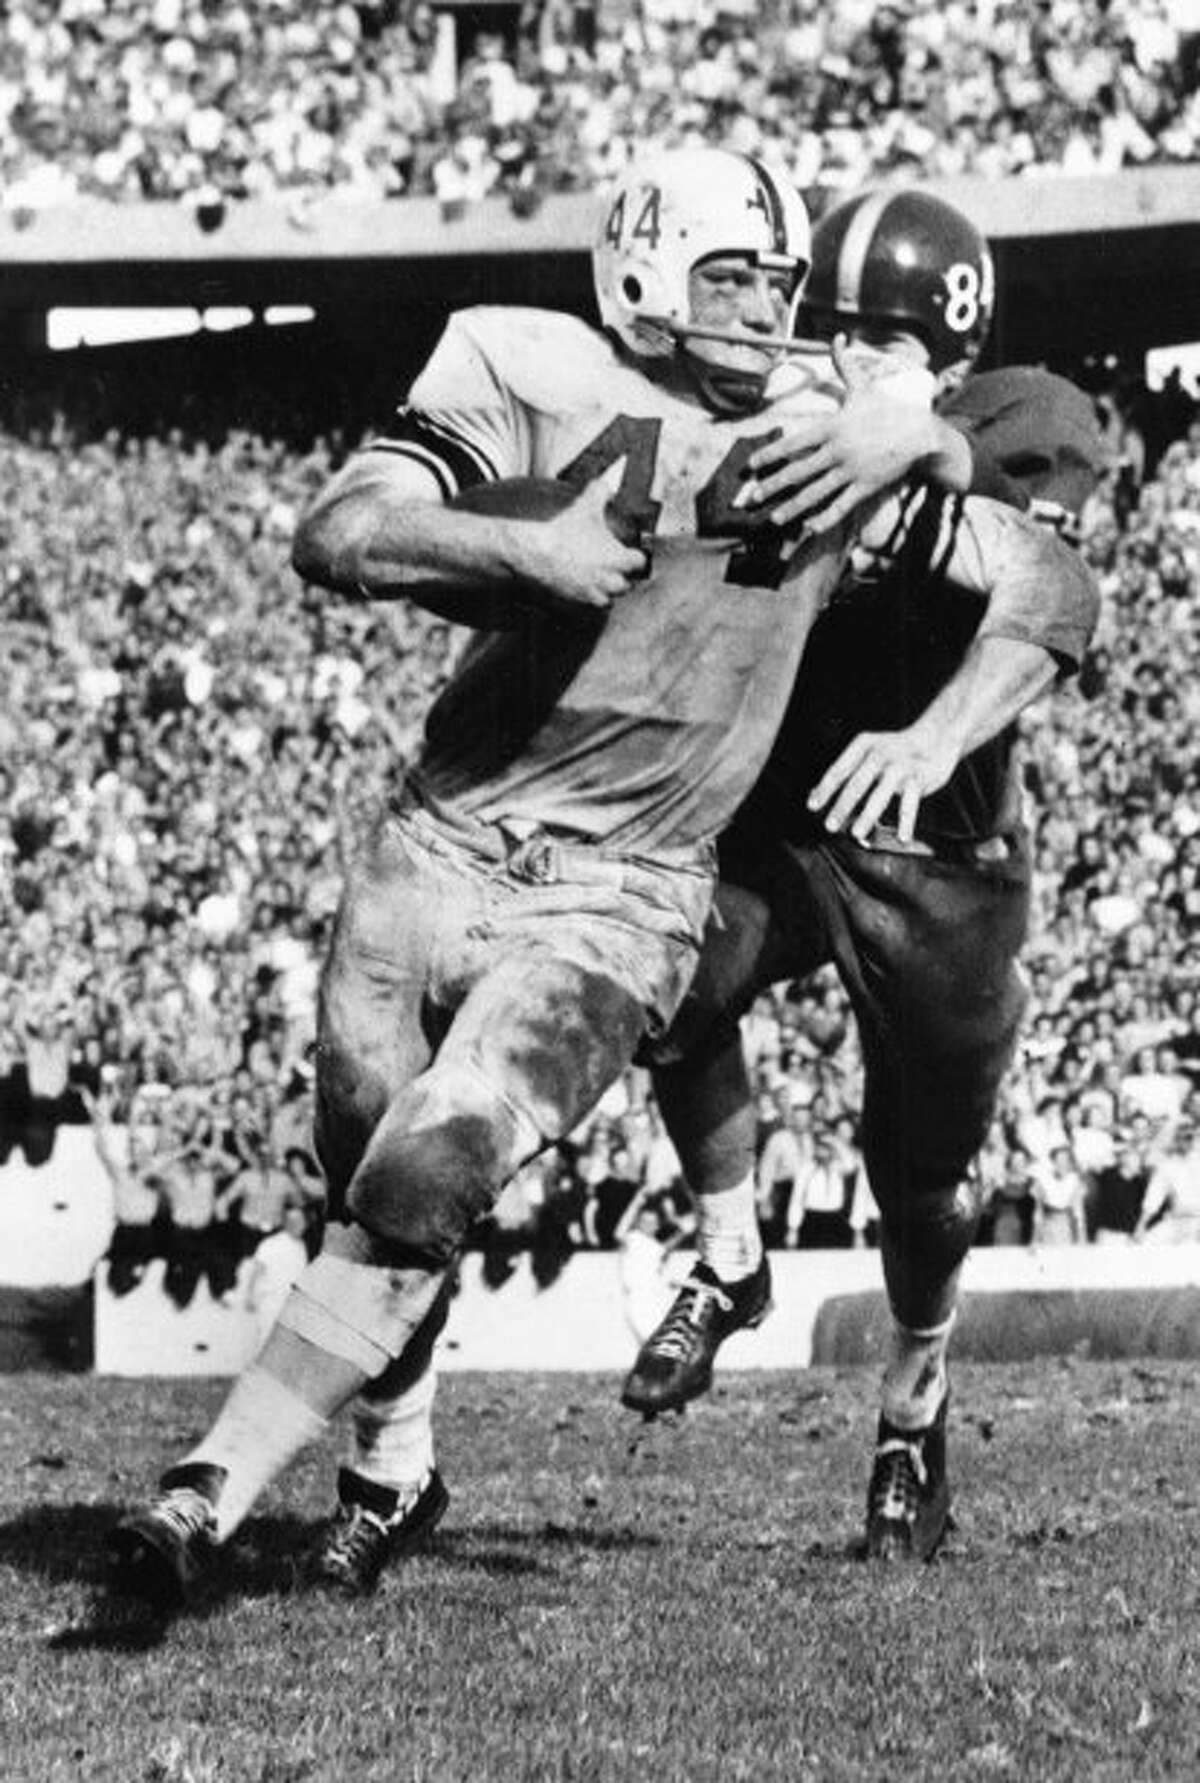 TEXAS A&M John David Crow, RB (1955-57) Crow was the first Aggies player to win the Heisman Trophy.